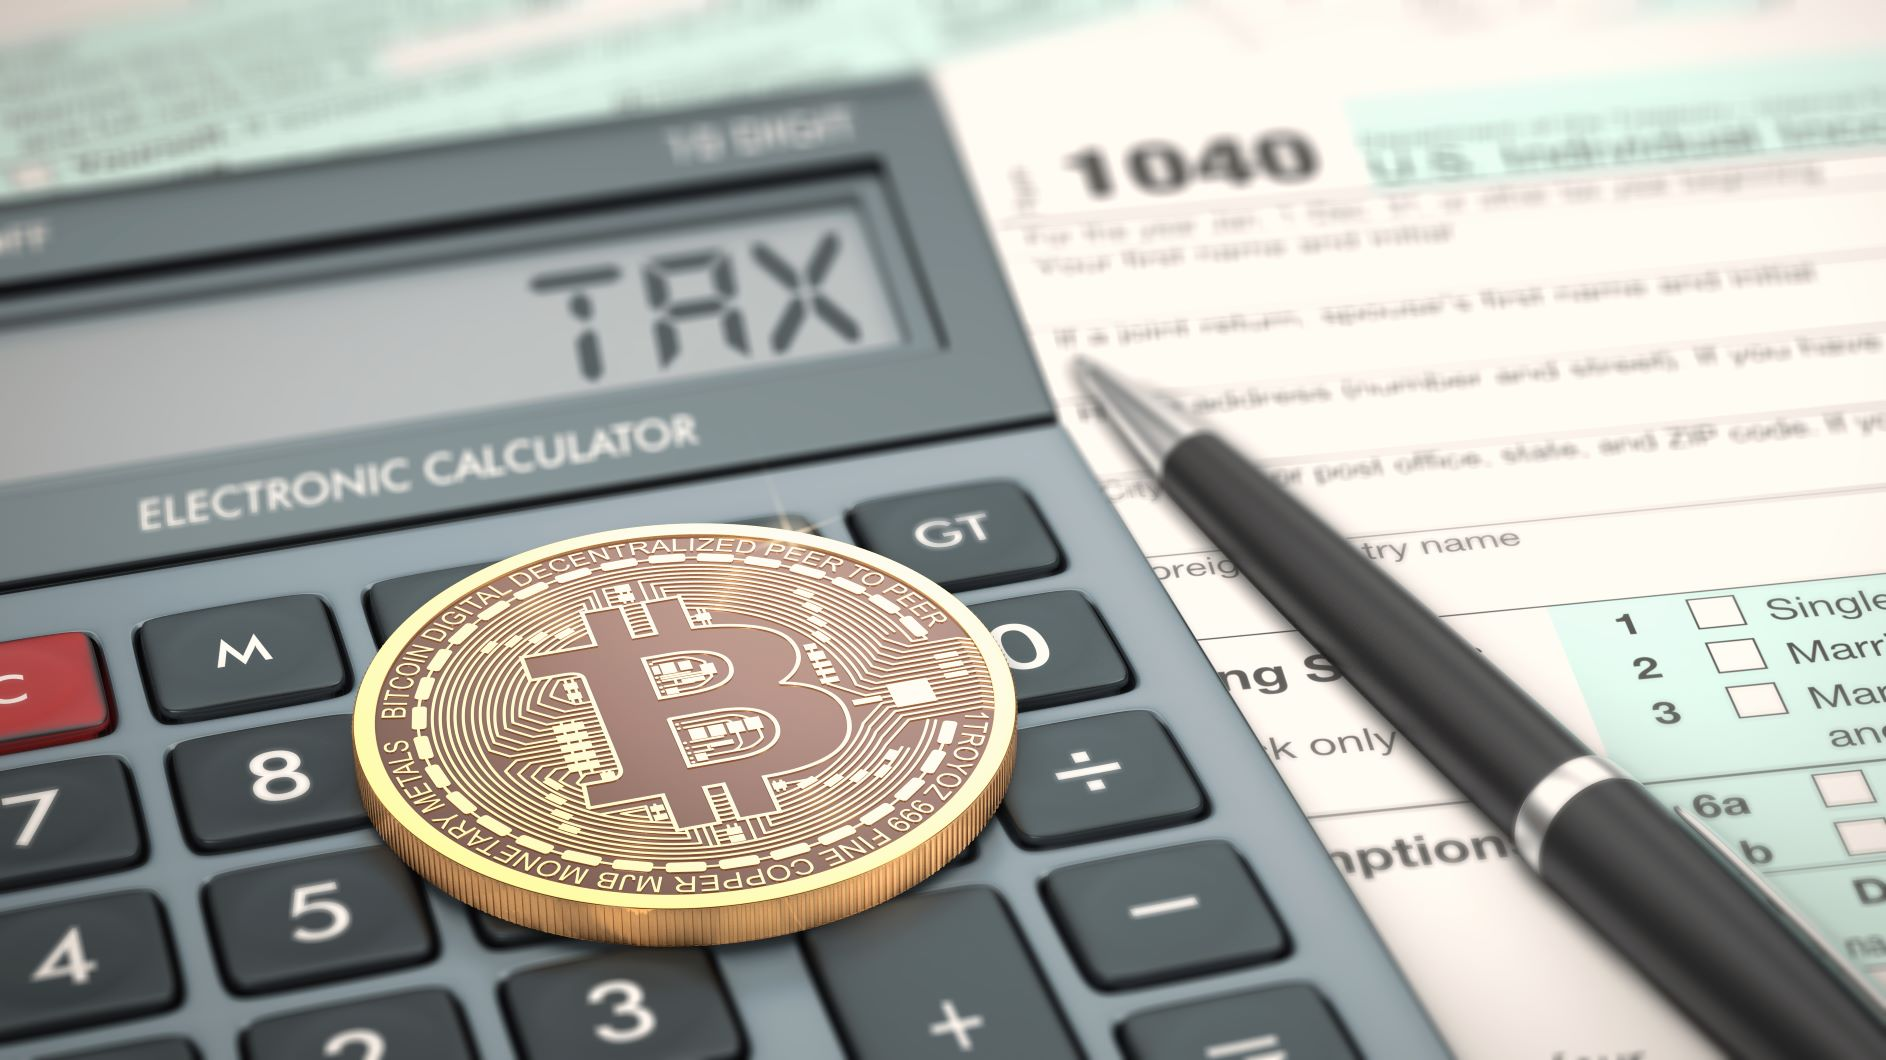 Senators add crypto taxes to infrastructure deal to raise $28B in extra revenue